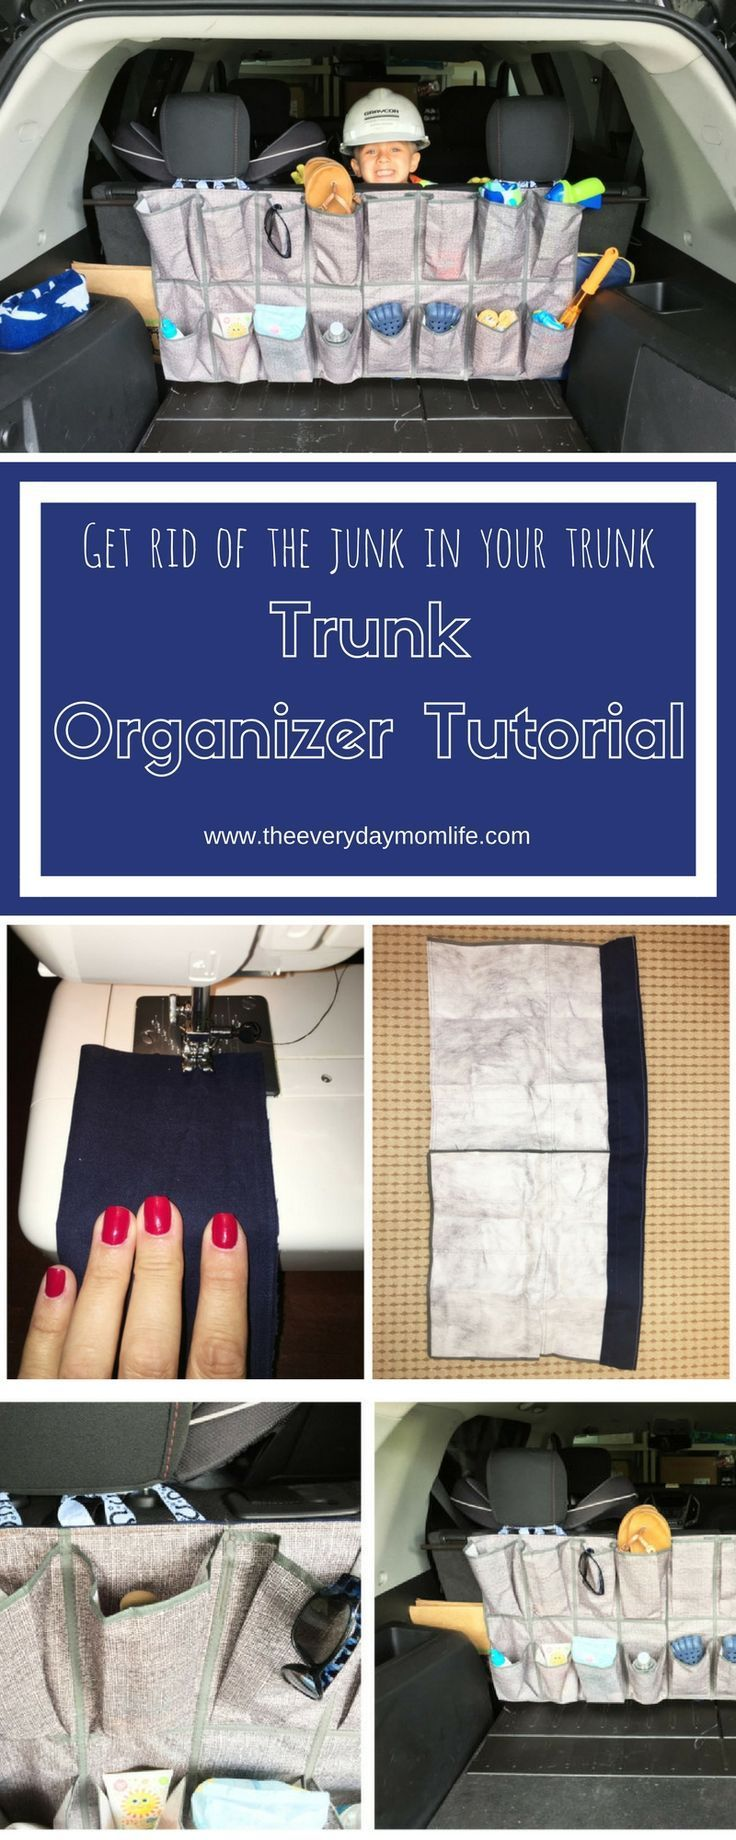 Get rid of the junk in your trunkwithout working out